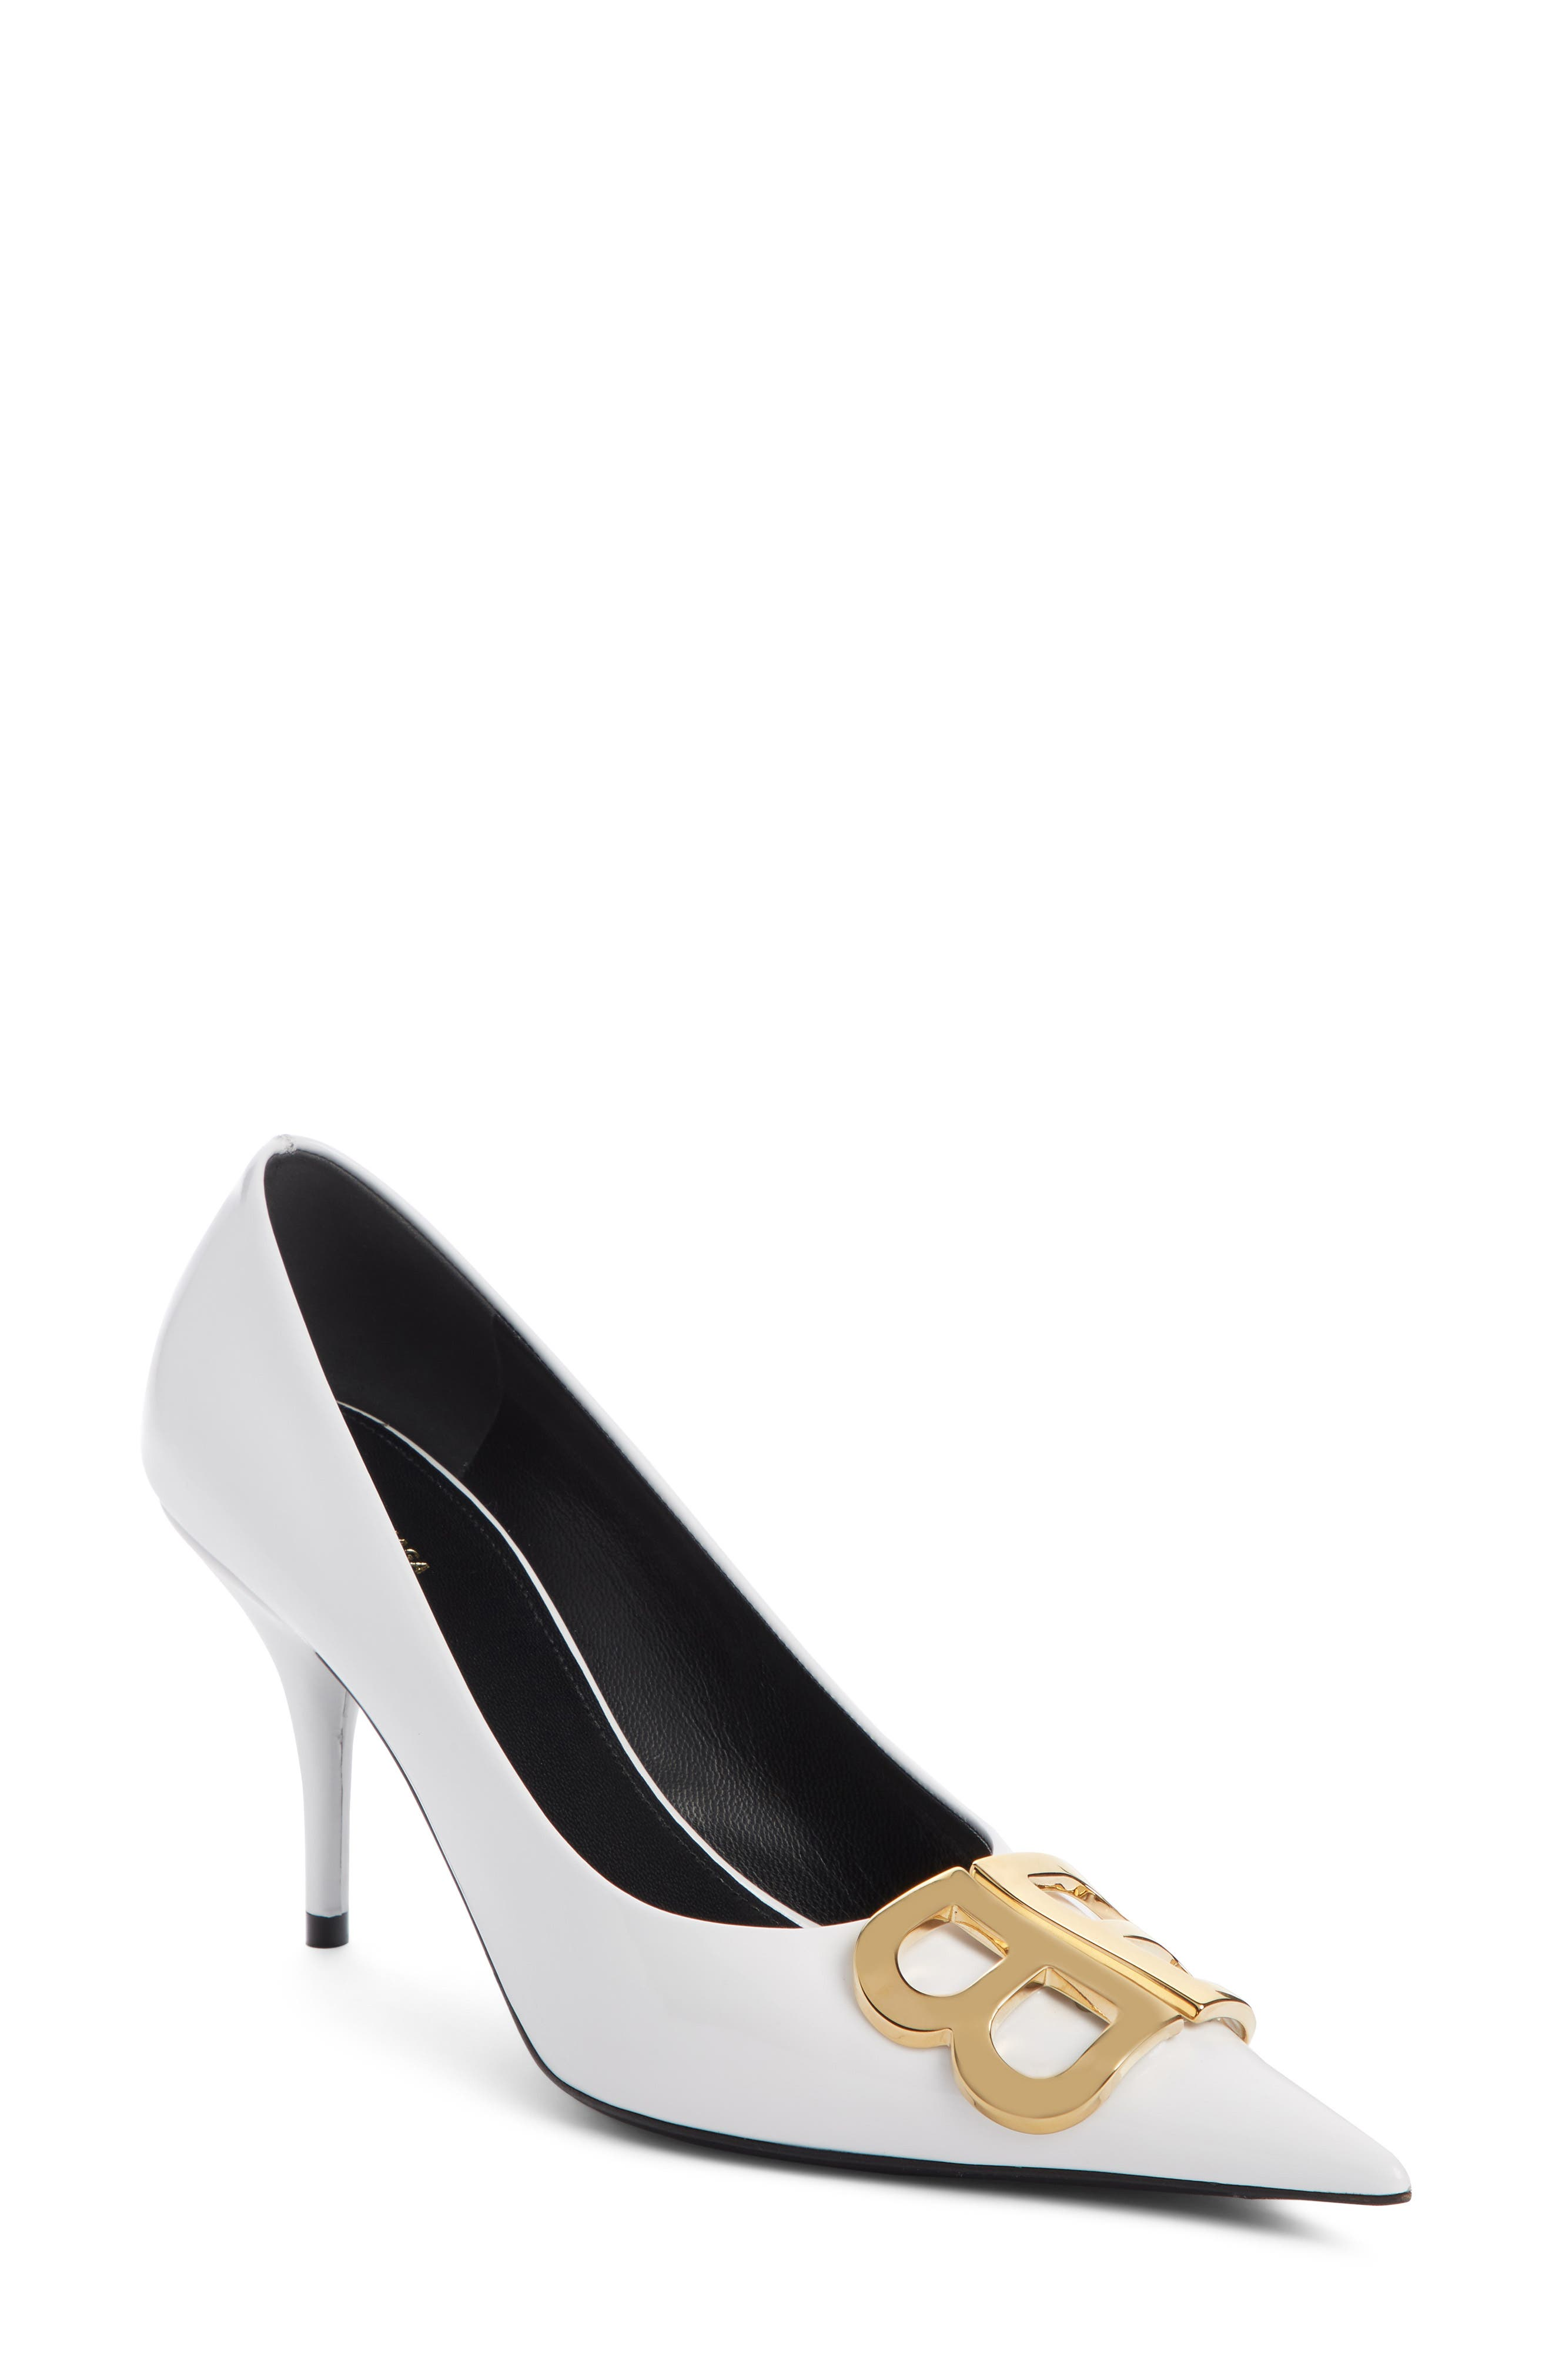 BB Pointy Toe Pump,                             Main thumbnail 1, color,                             WHITE PATENT